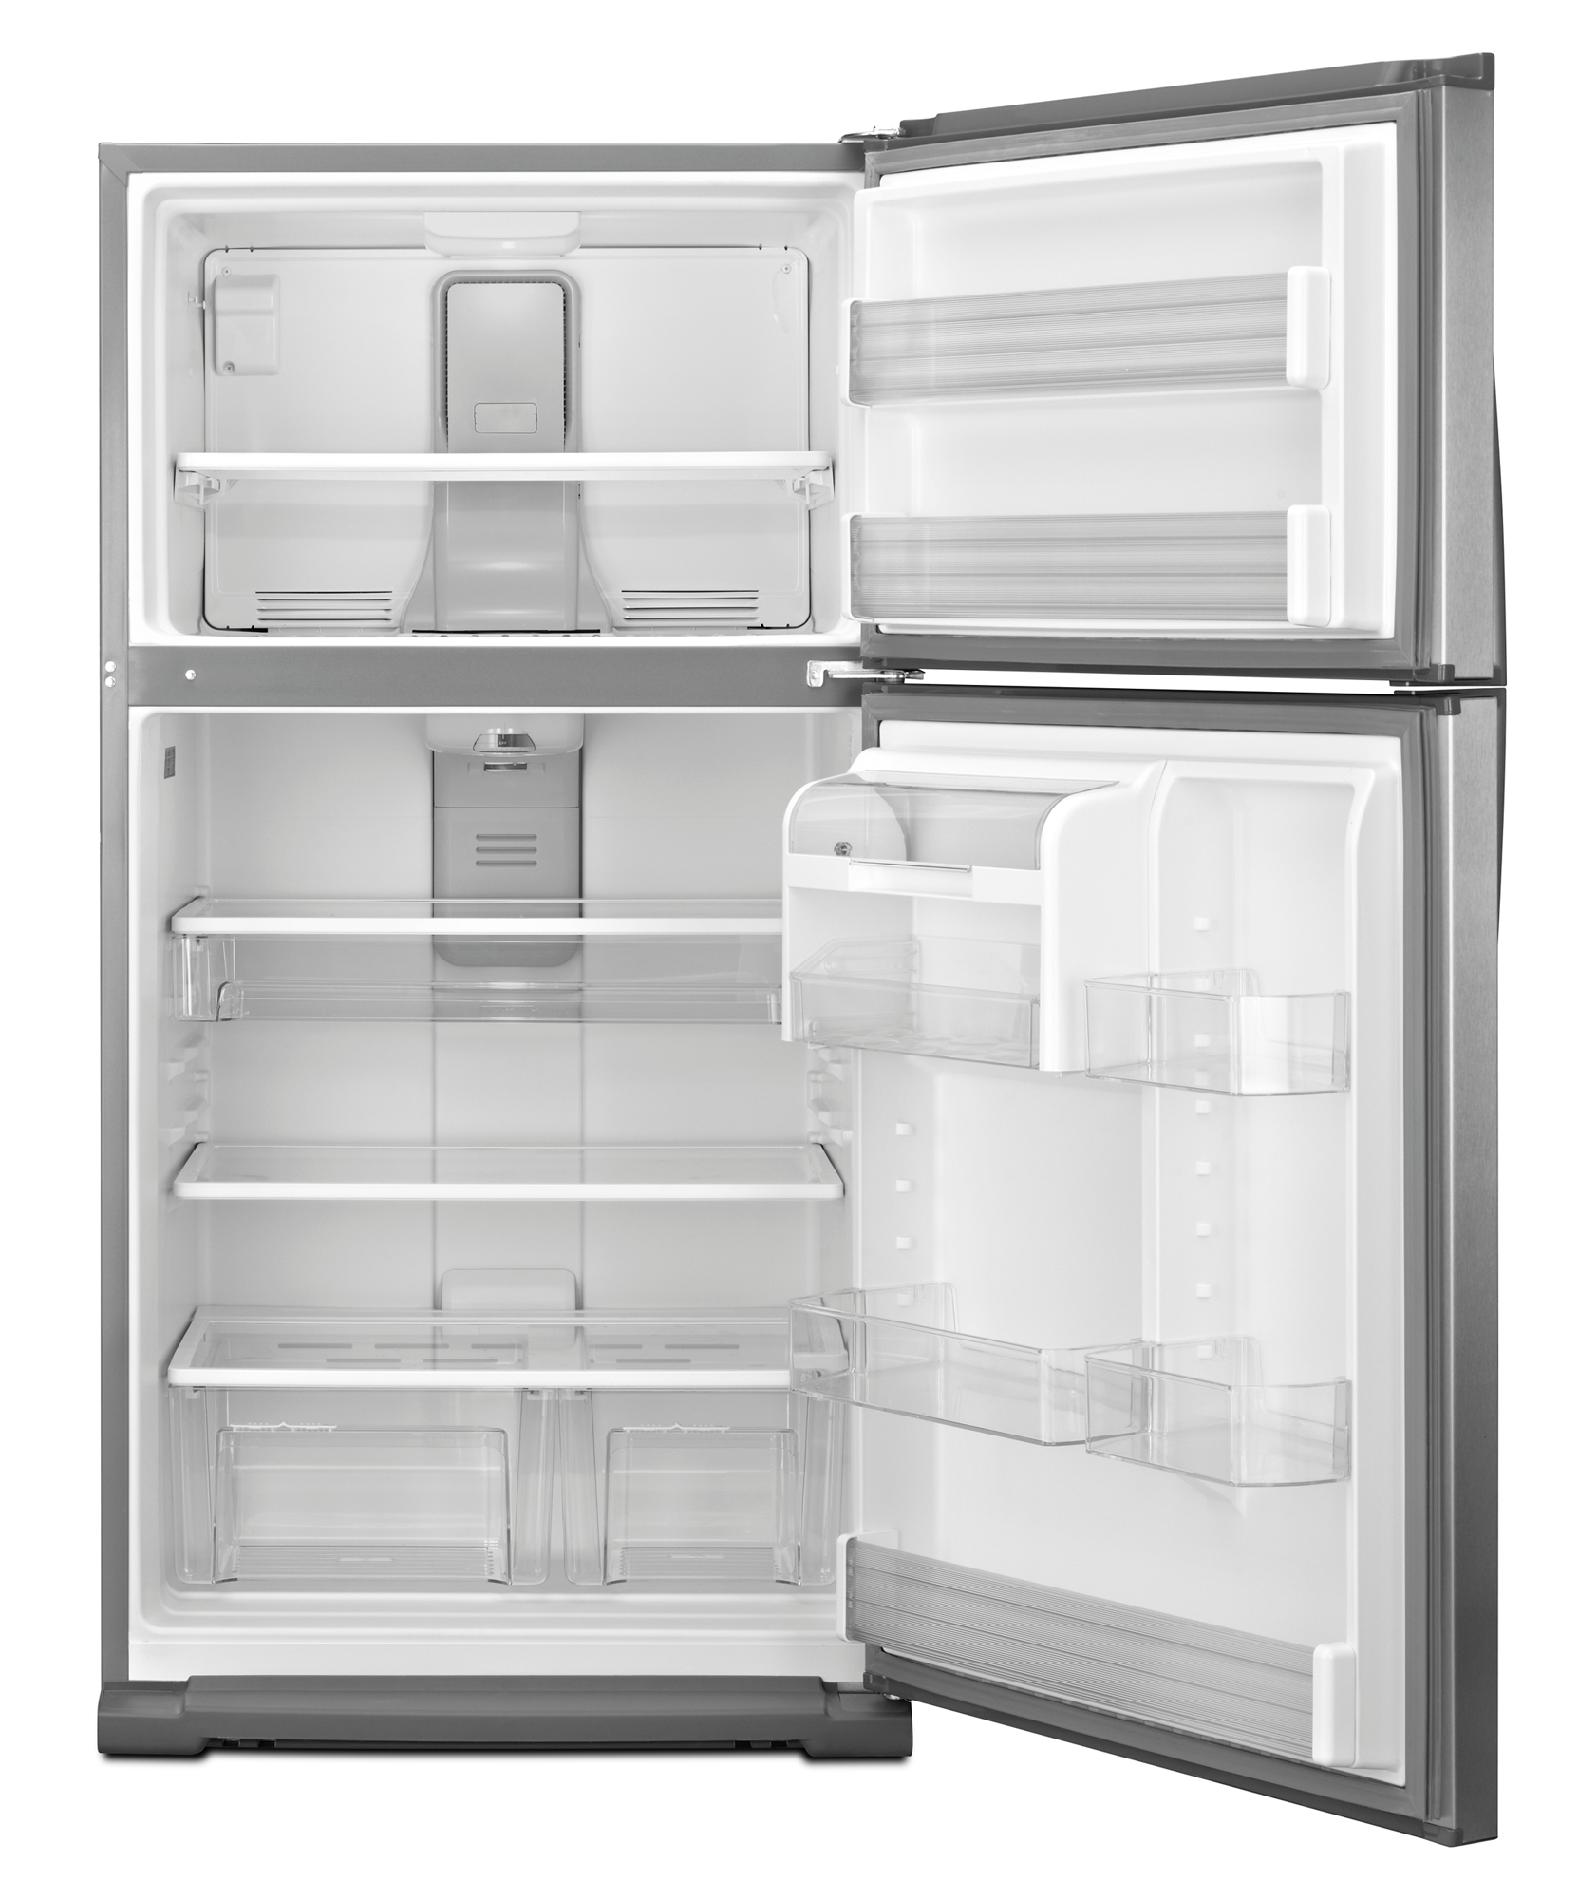 Whirlpool 21.0 cu. ft. Top-Freezer Refrigerator w/ Smooth, Contoured Doors - Stainless Steel